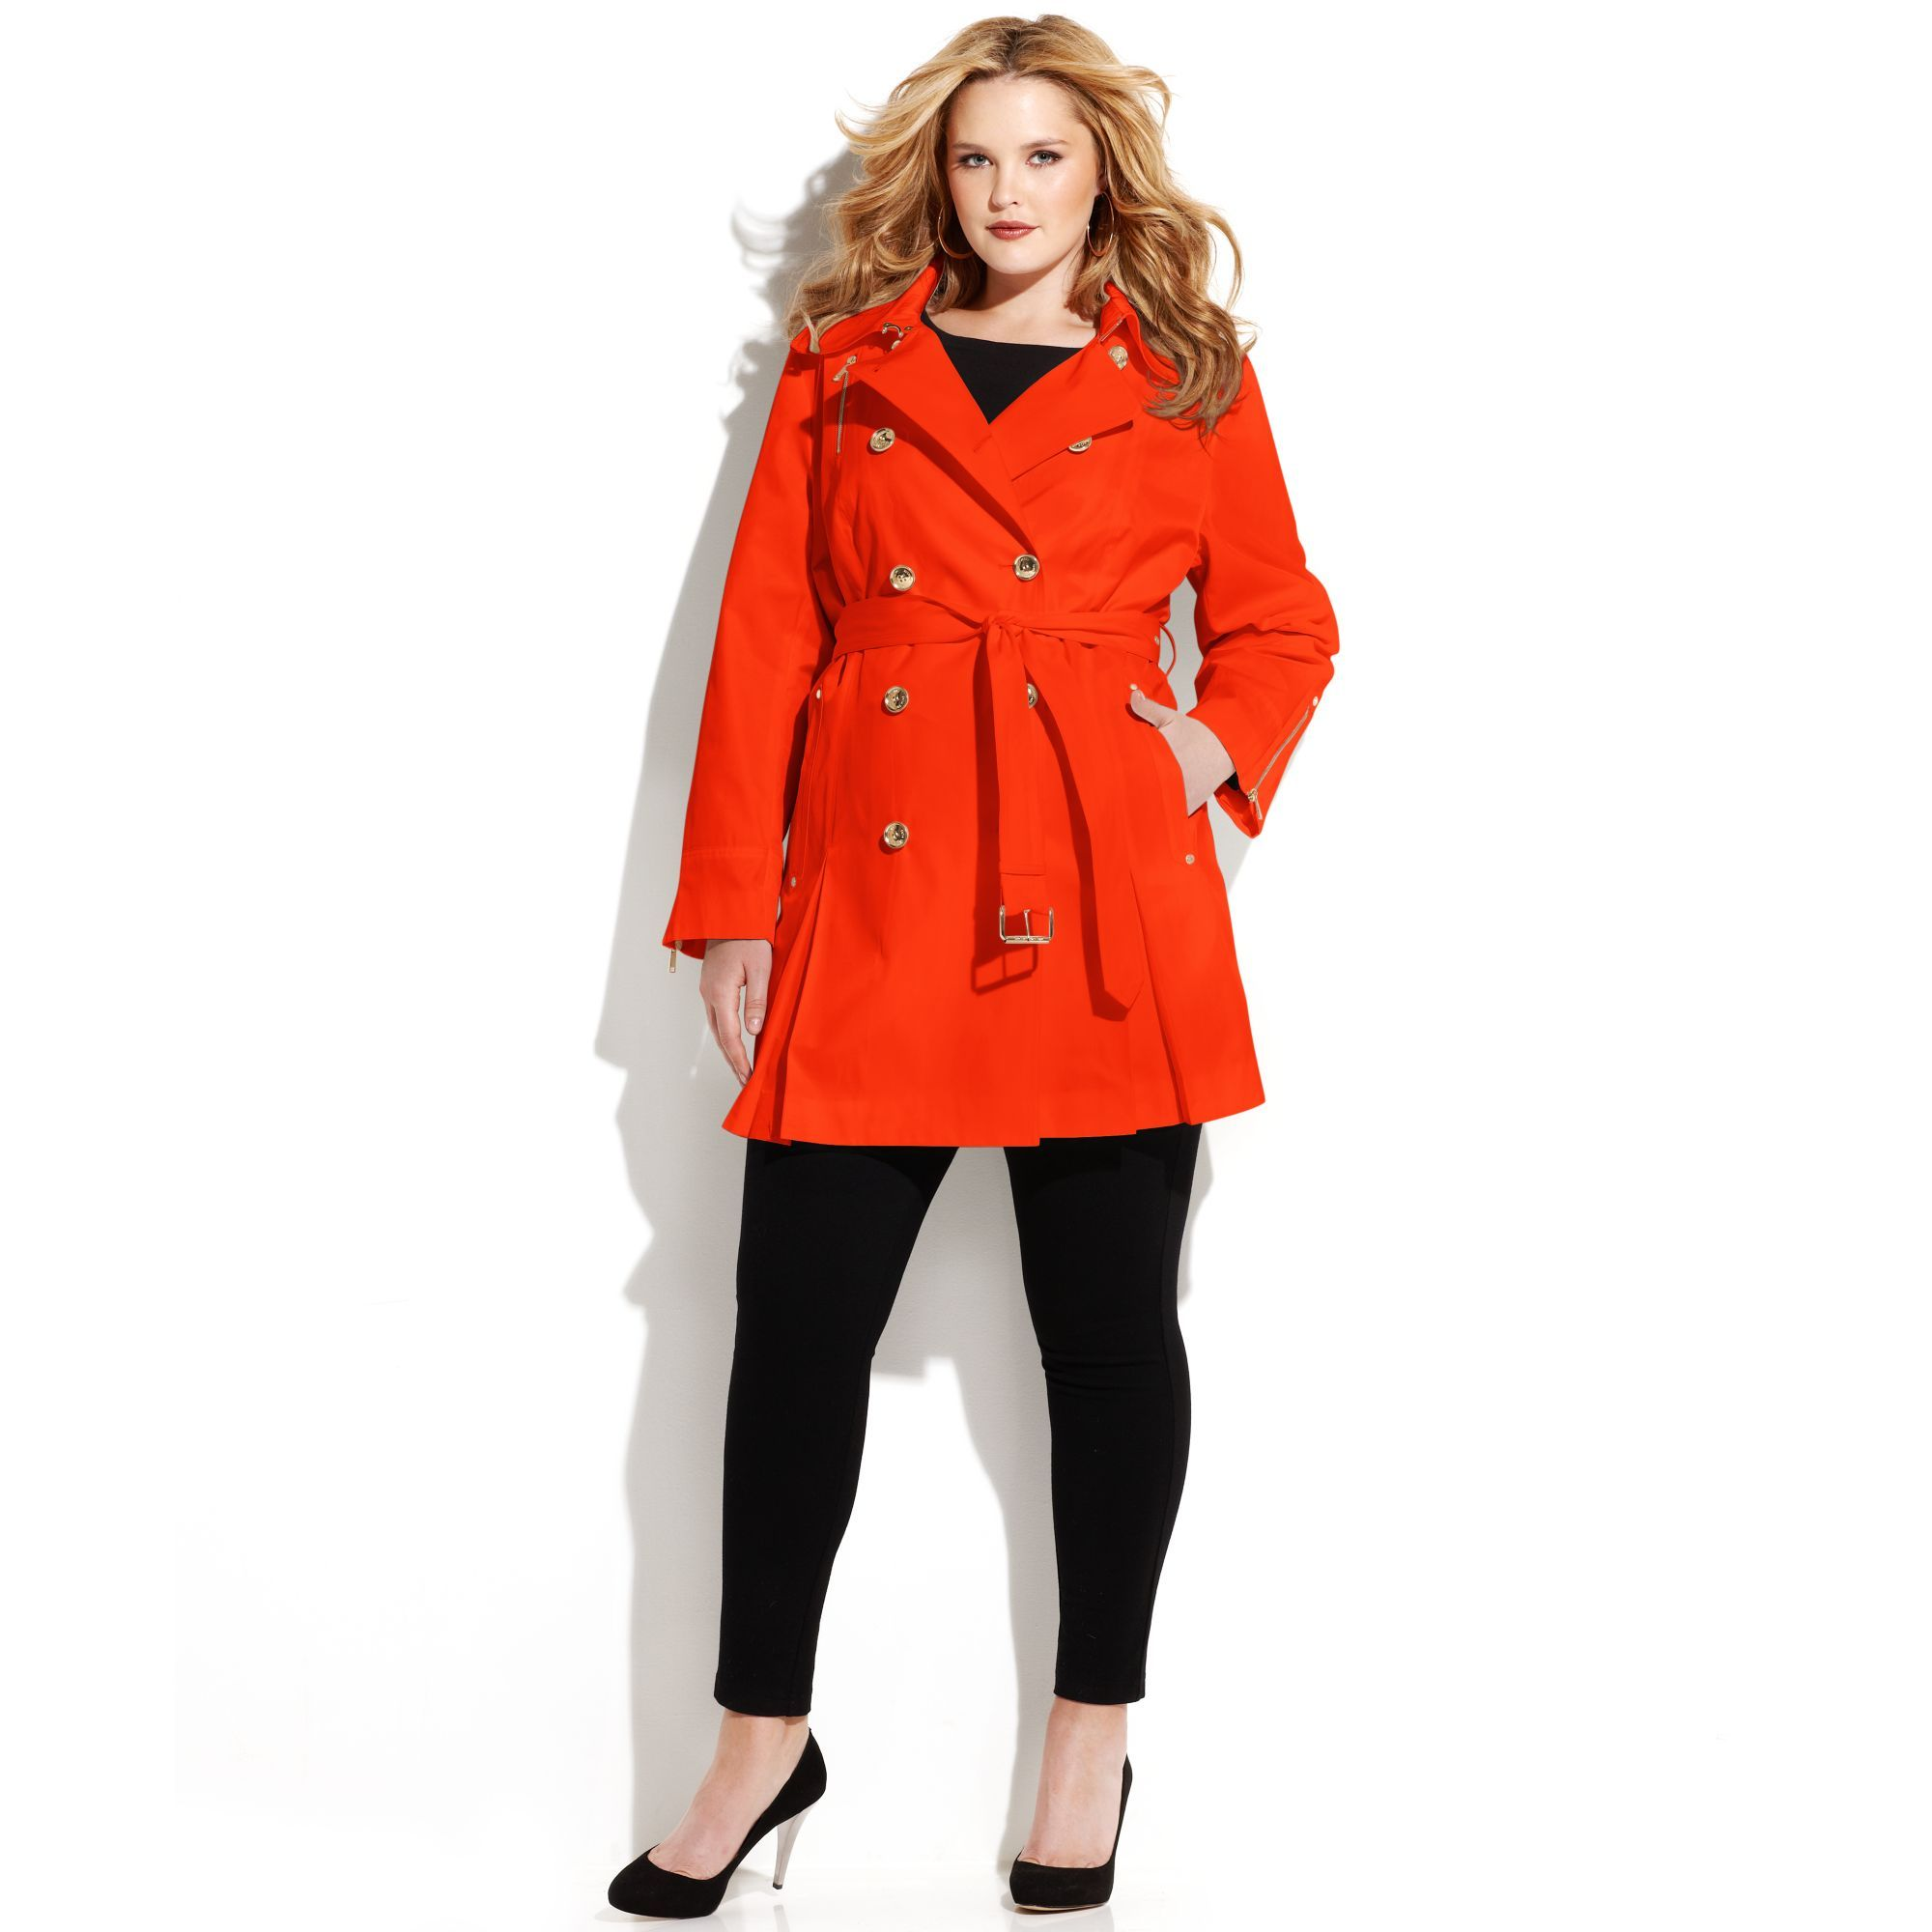 3cb8af8a073d1 Michael Kors Plus Size Double Breasted Belted Trench Coat in Red (Coral  Reef)